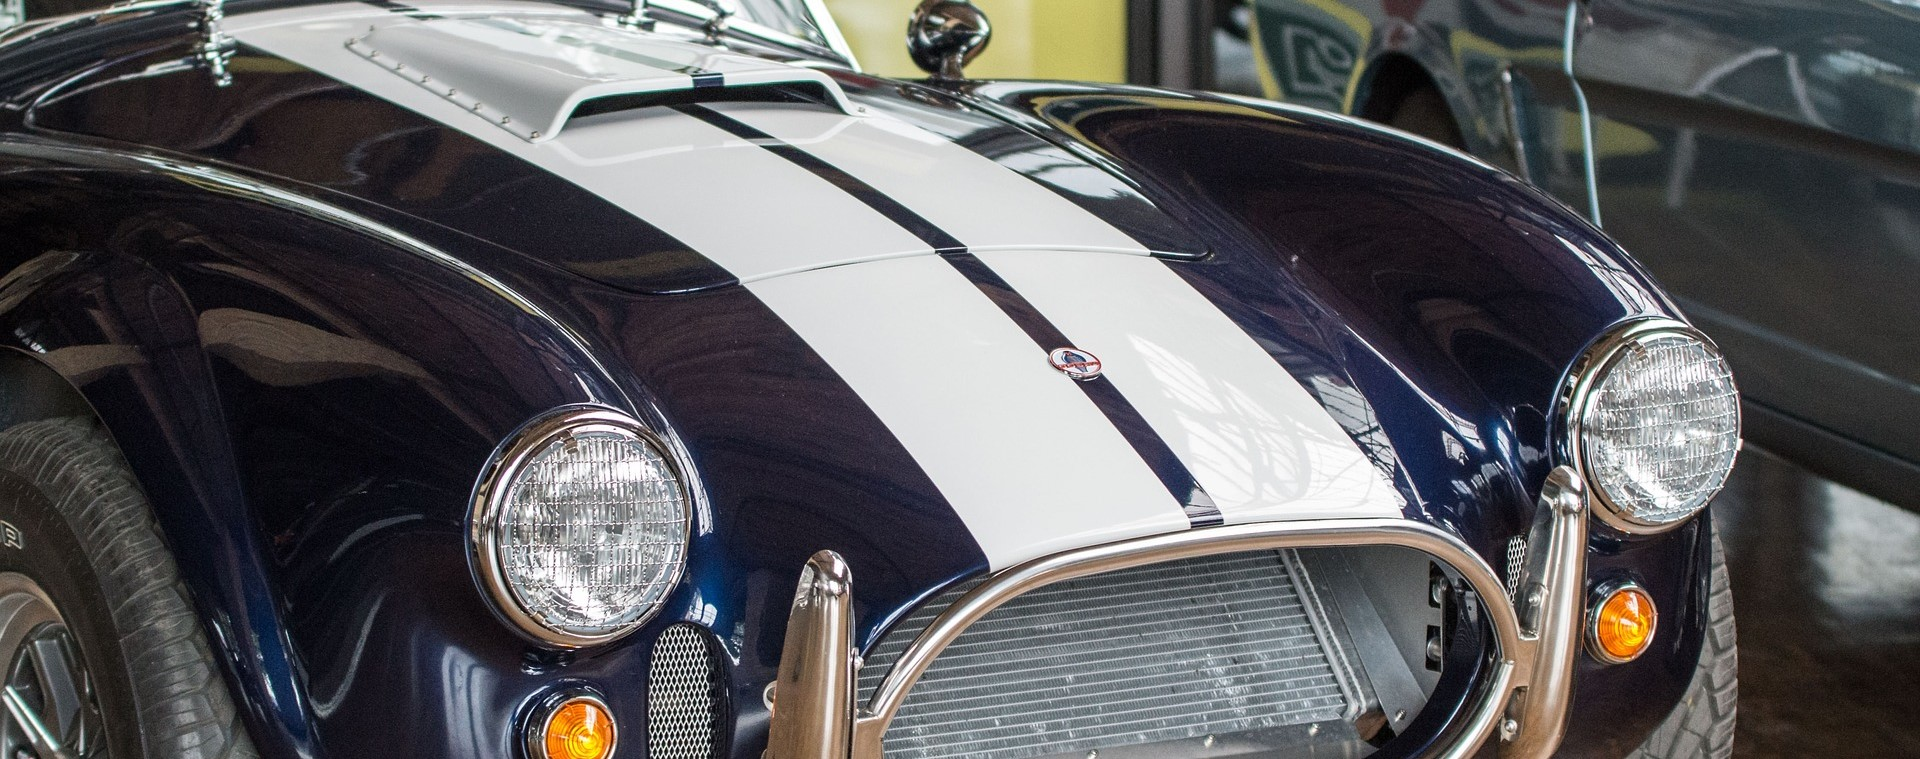 Classic Cobra Shelby in New Haven, CT | Breast Cancer Car Donations